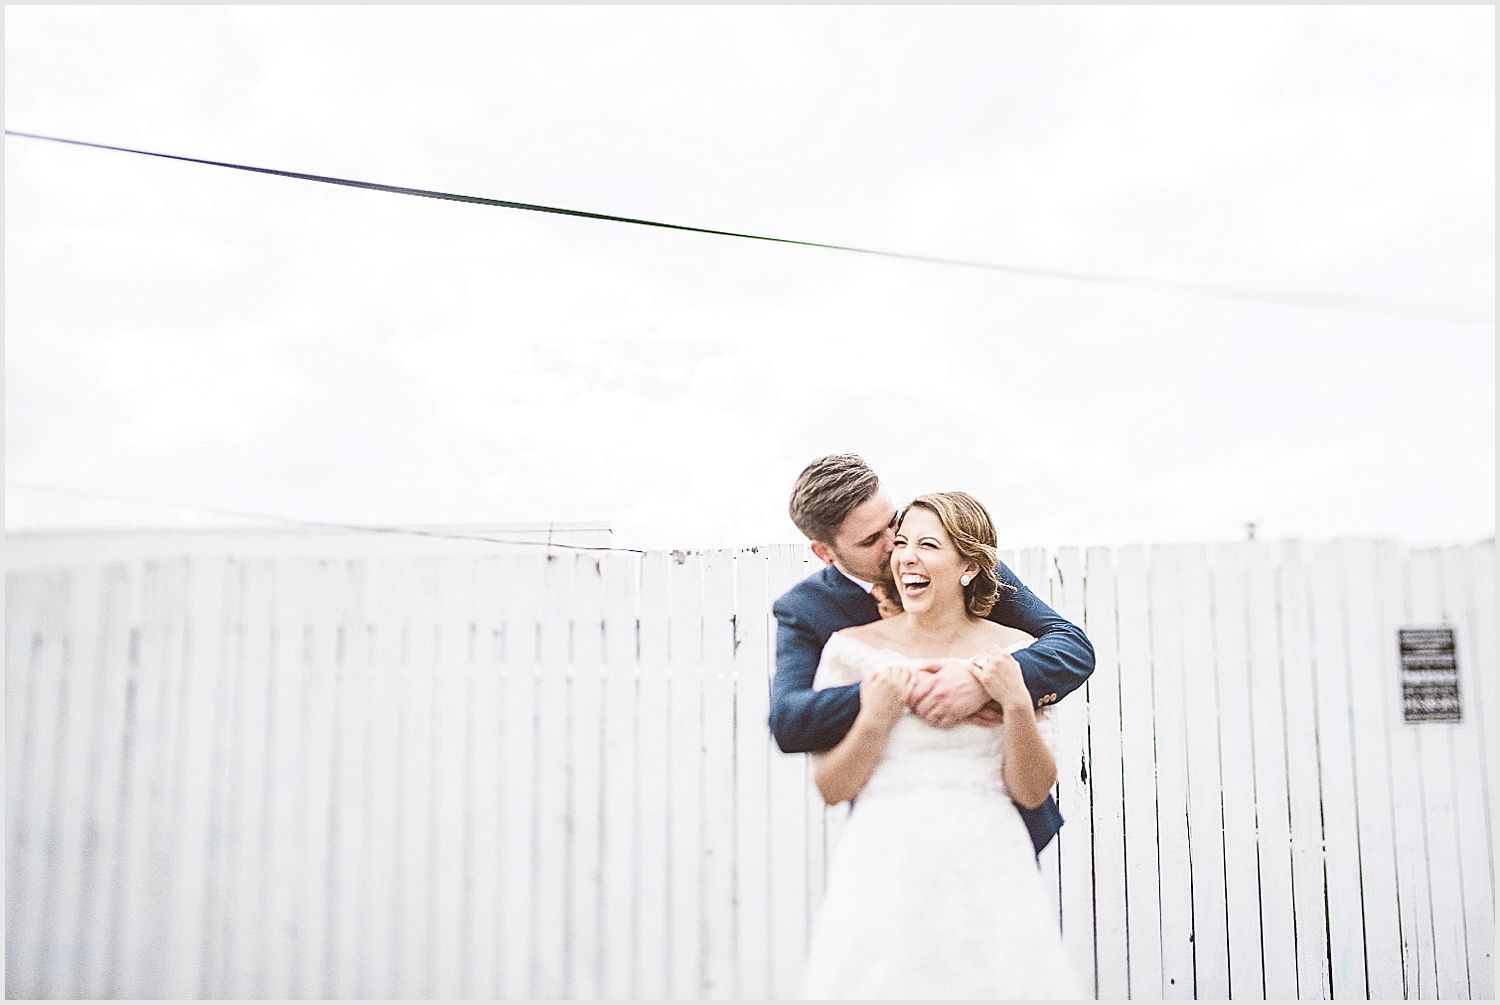 zaspels_Minneapolis_wedding_portraits_lucas_botz_photography_021.jpg